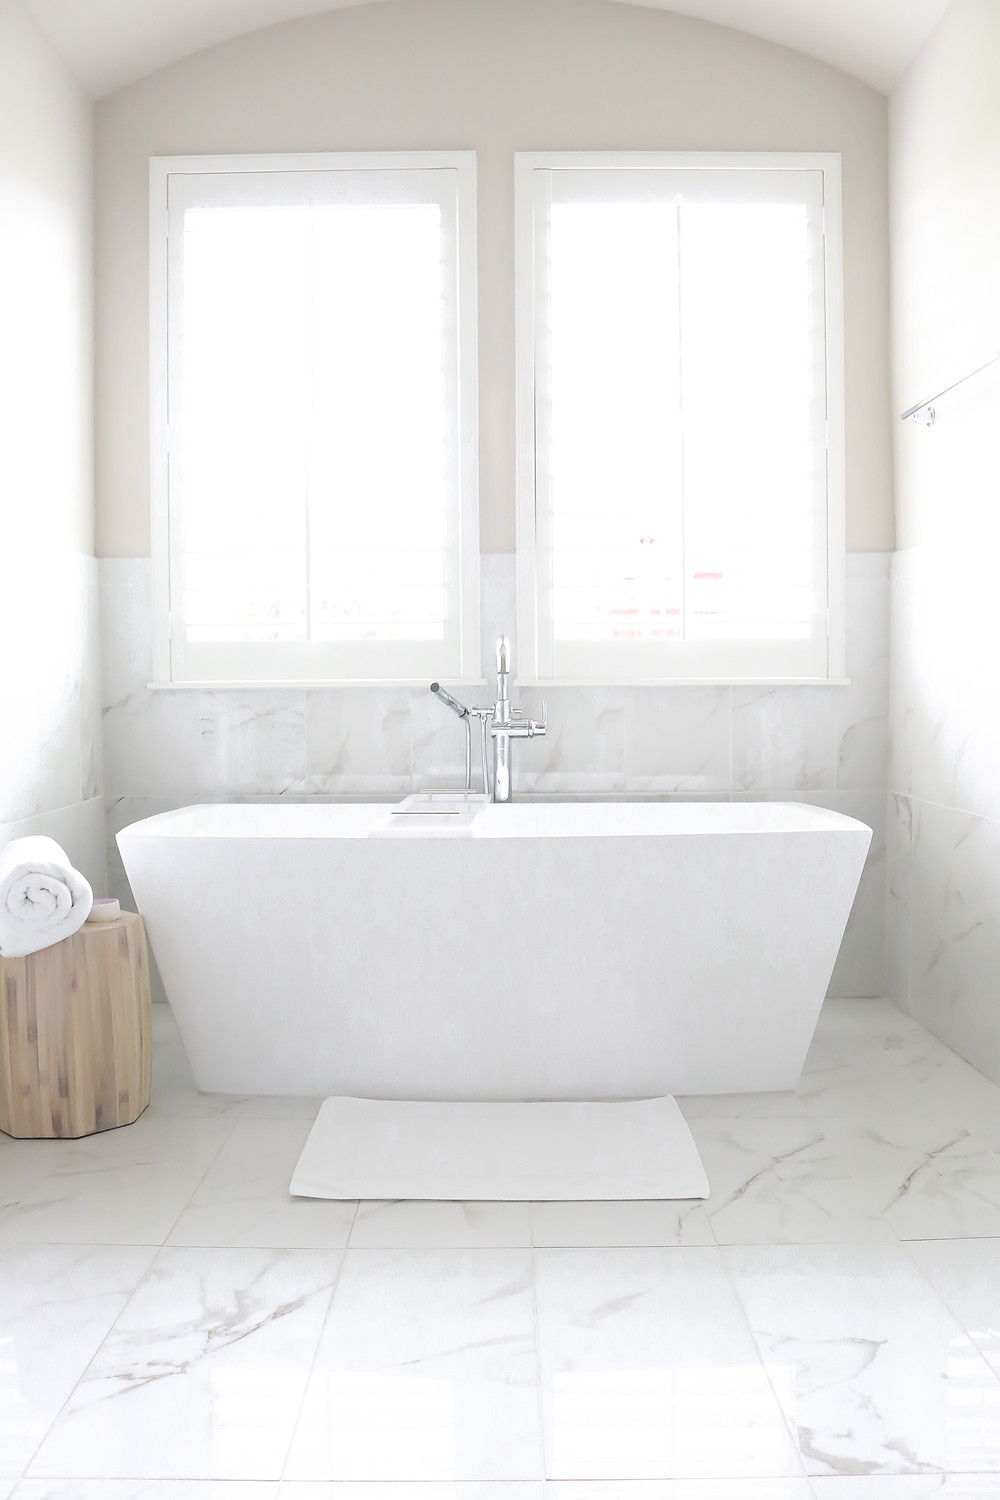 white bathroom by Laura Design and Co, Flower Mound TX based interior designer